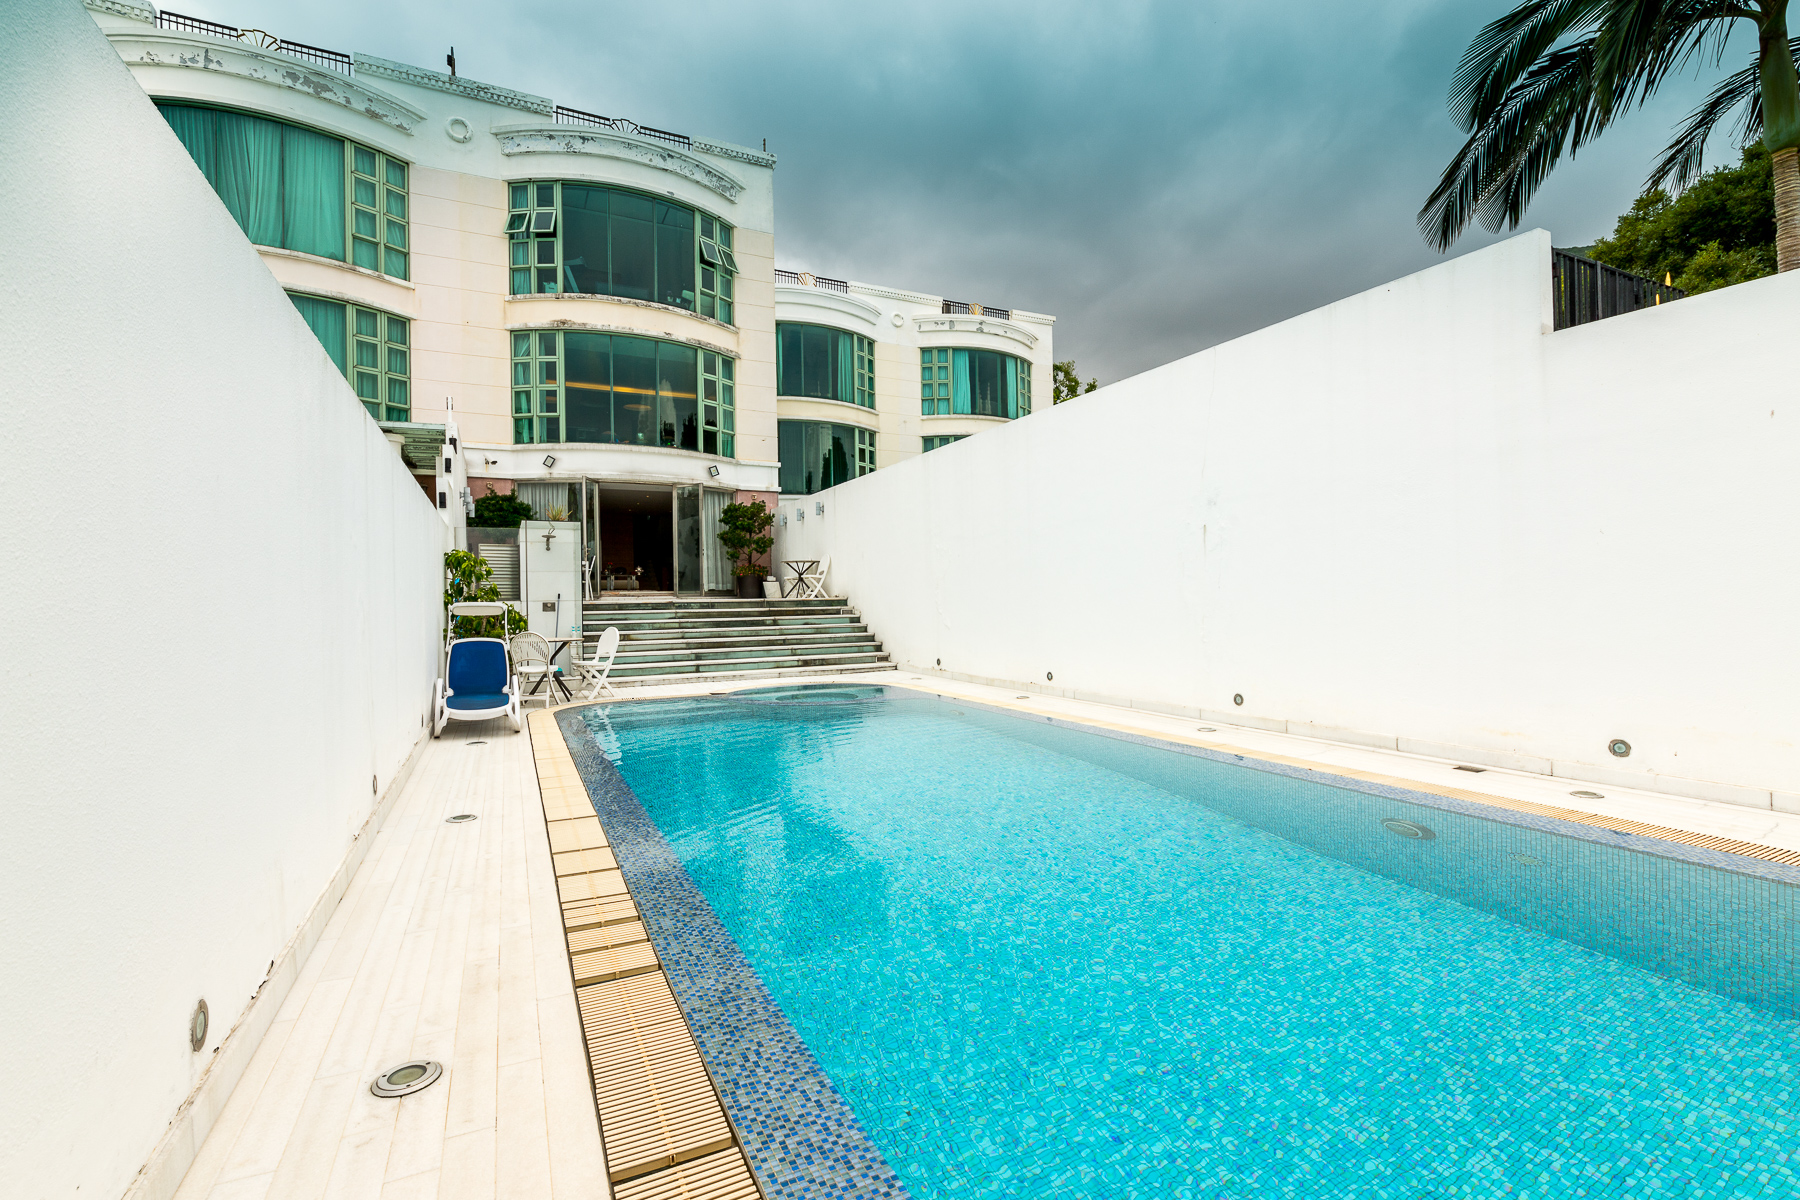 Townhouse for Sale at Stanley Breeze Stanley, Hong Kong Hong Kong